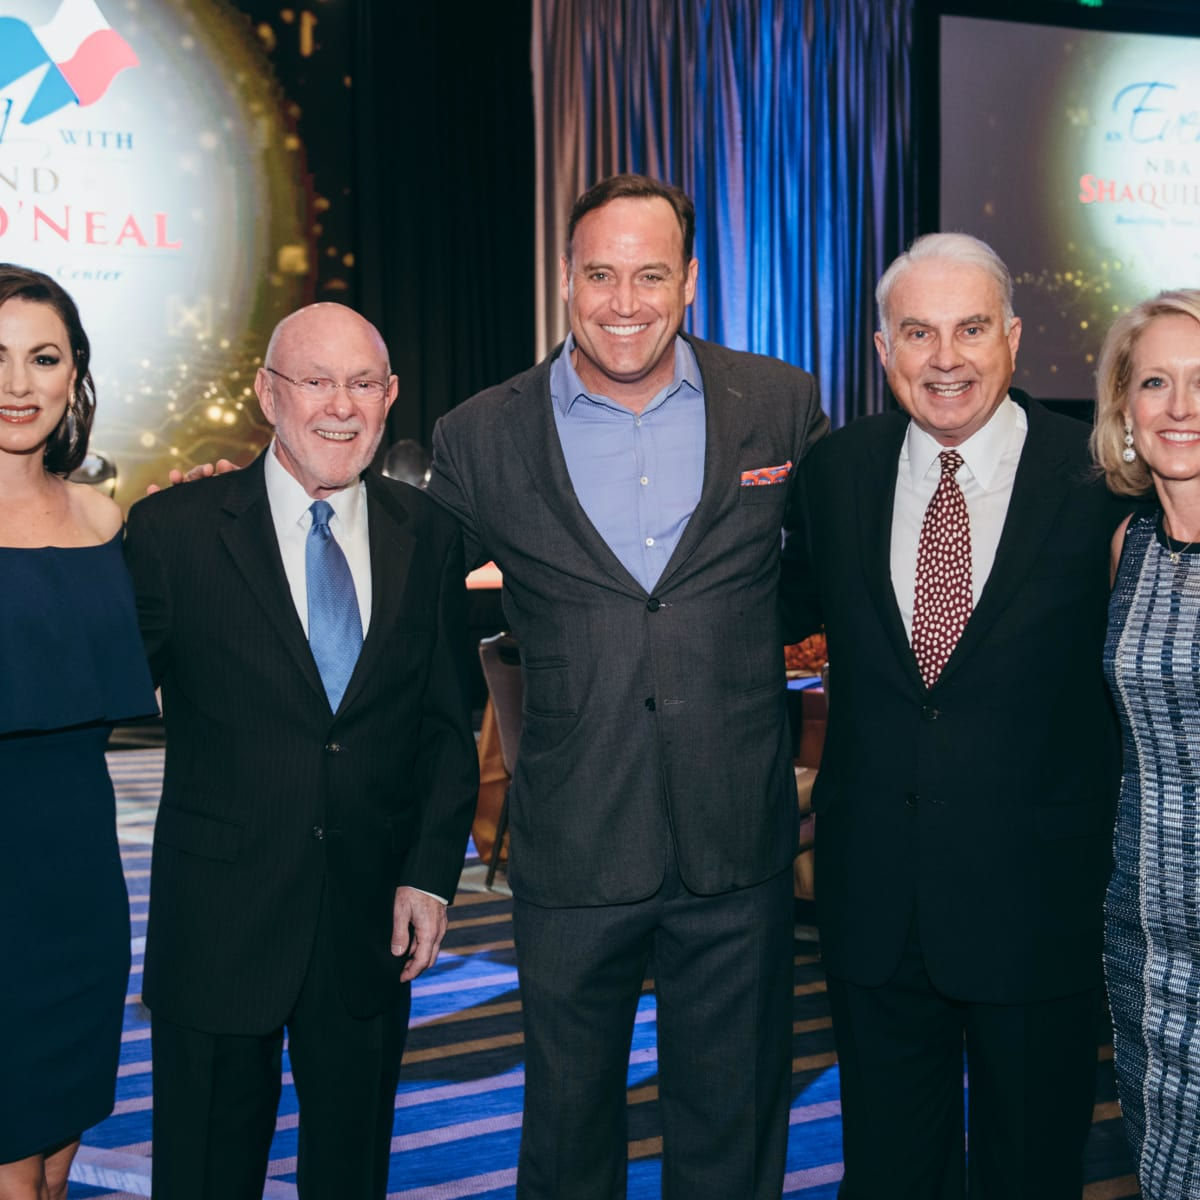 Shaquile O' Neal Event co-chair Julie Bergen, Texas Children's Cancer Center Director Dr. David Poplack, Matt Iseman, Texas Children's Hospital President and CEO Mark A. Wallace and event co-chair Kathy Zay